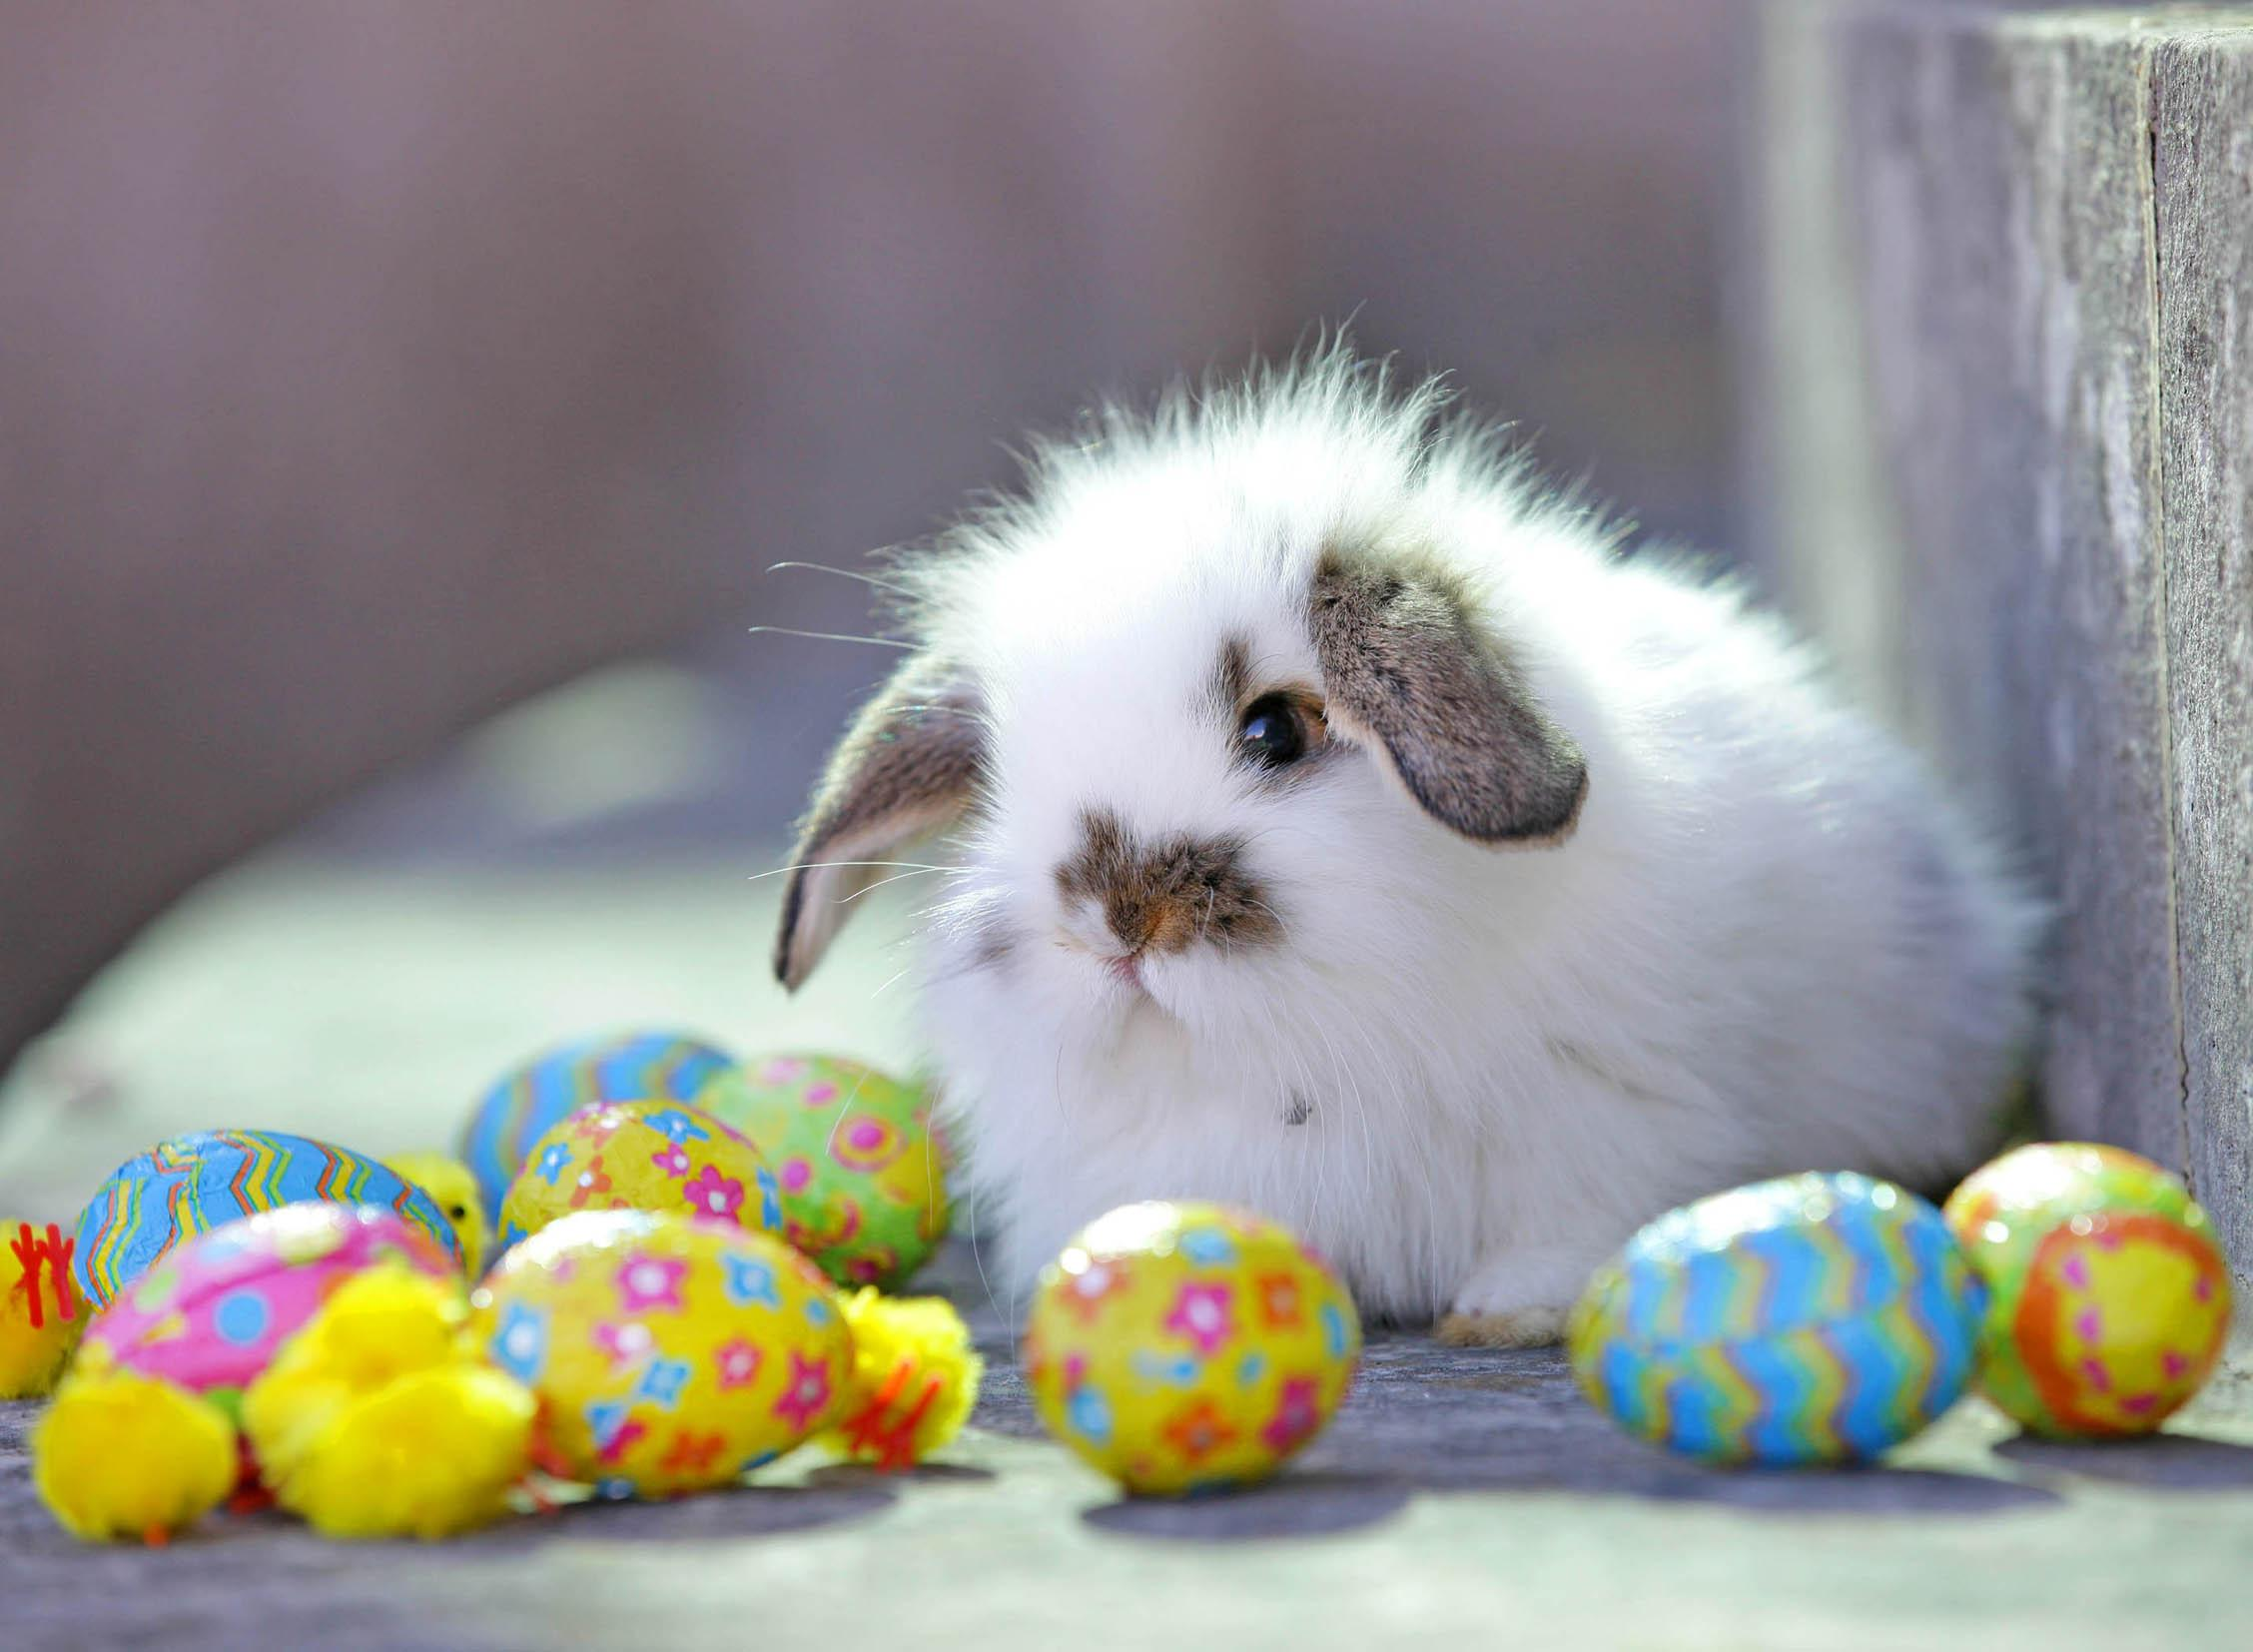 ADORABLE EASTER WALLPAPER   133696   HD Wallpapers 2256x1654